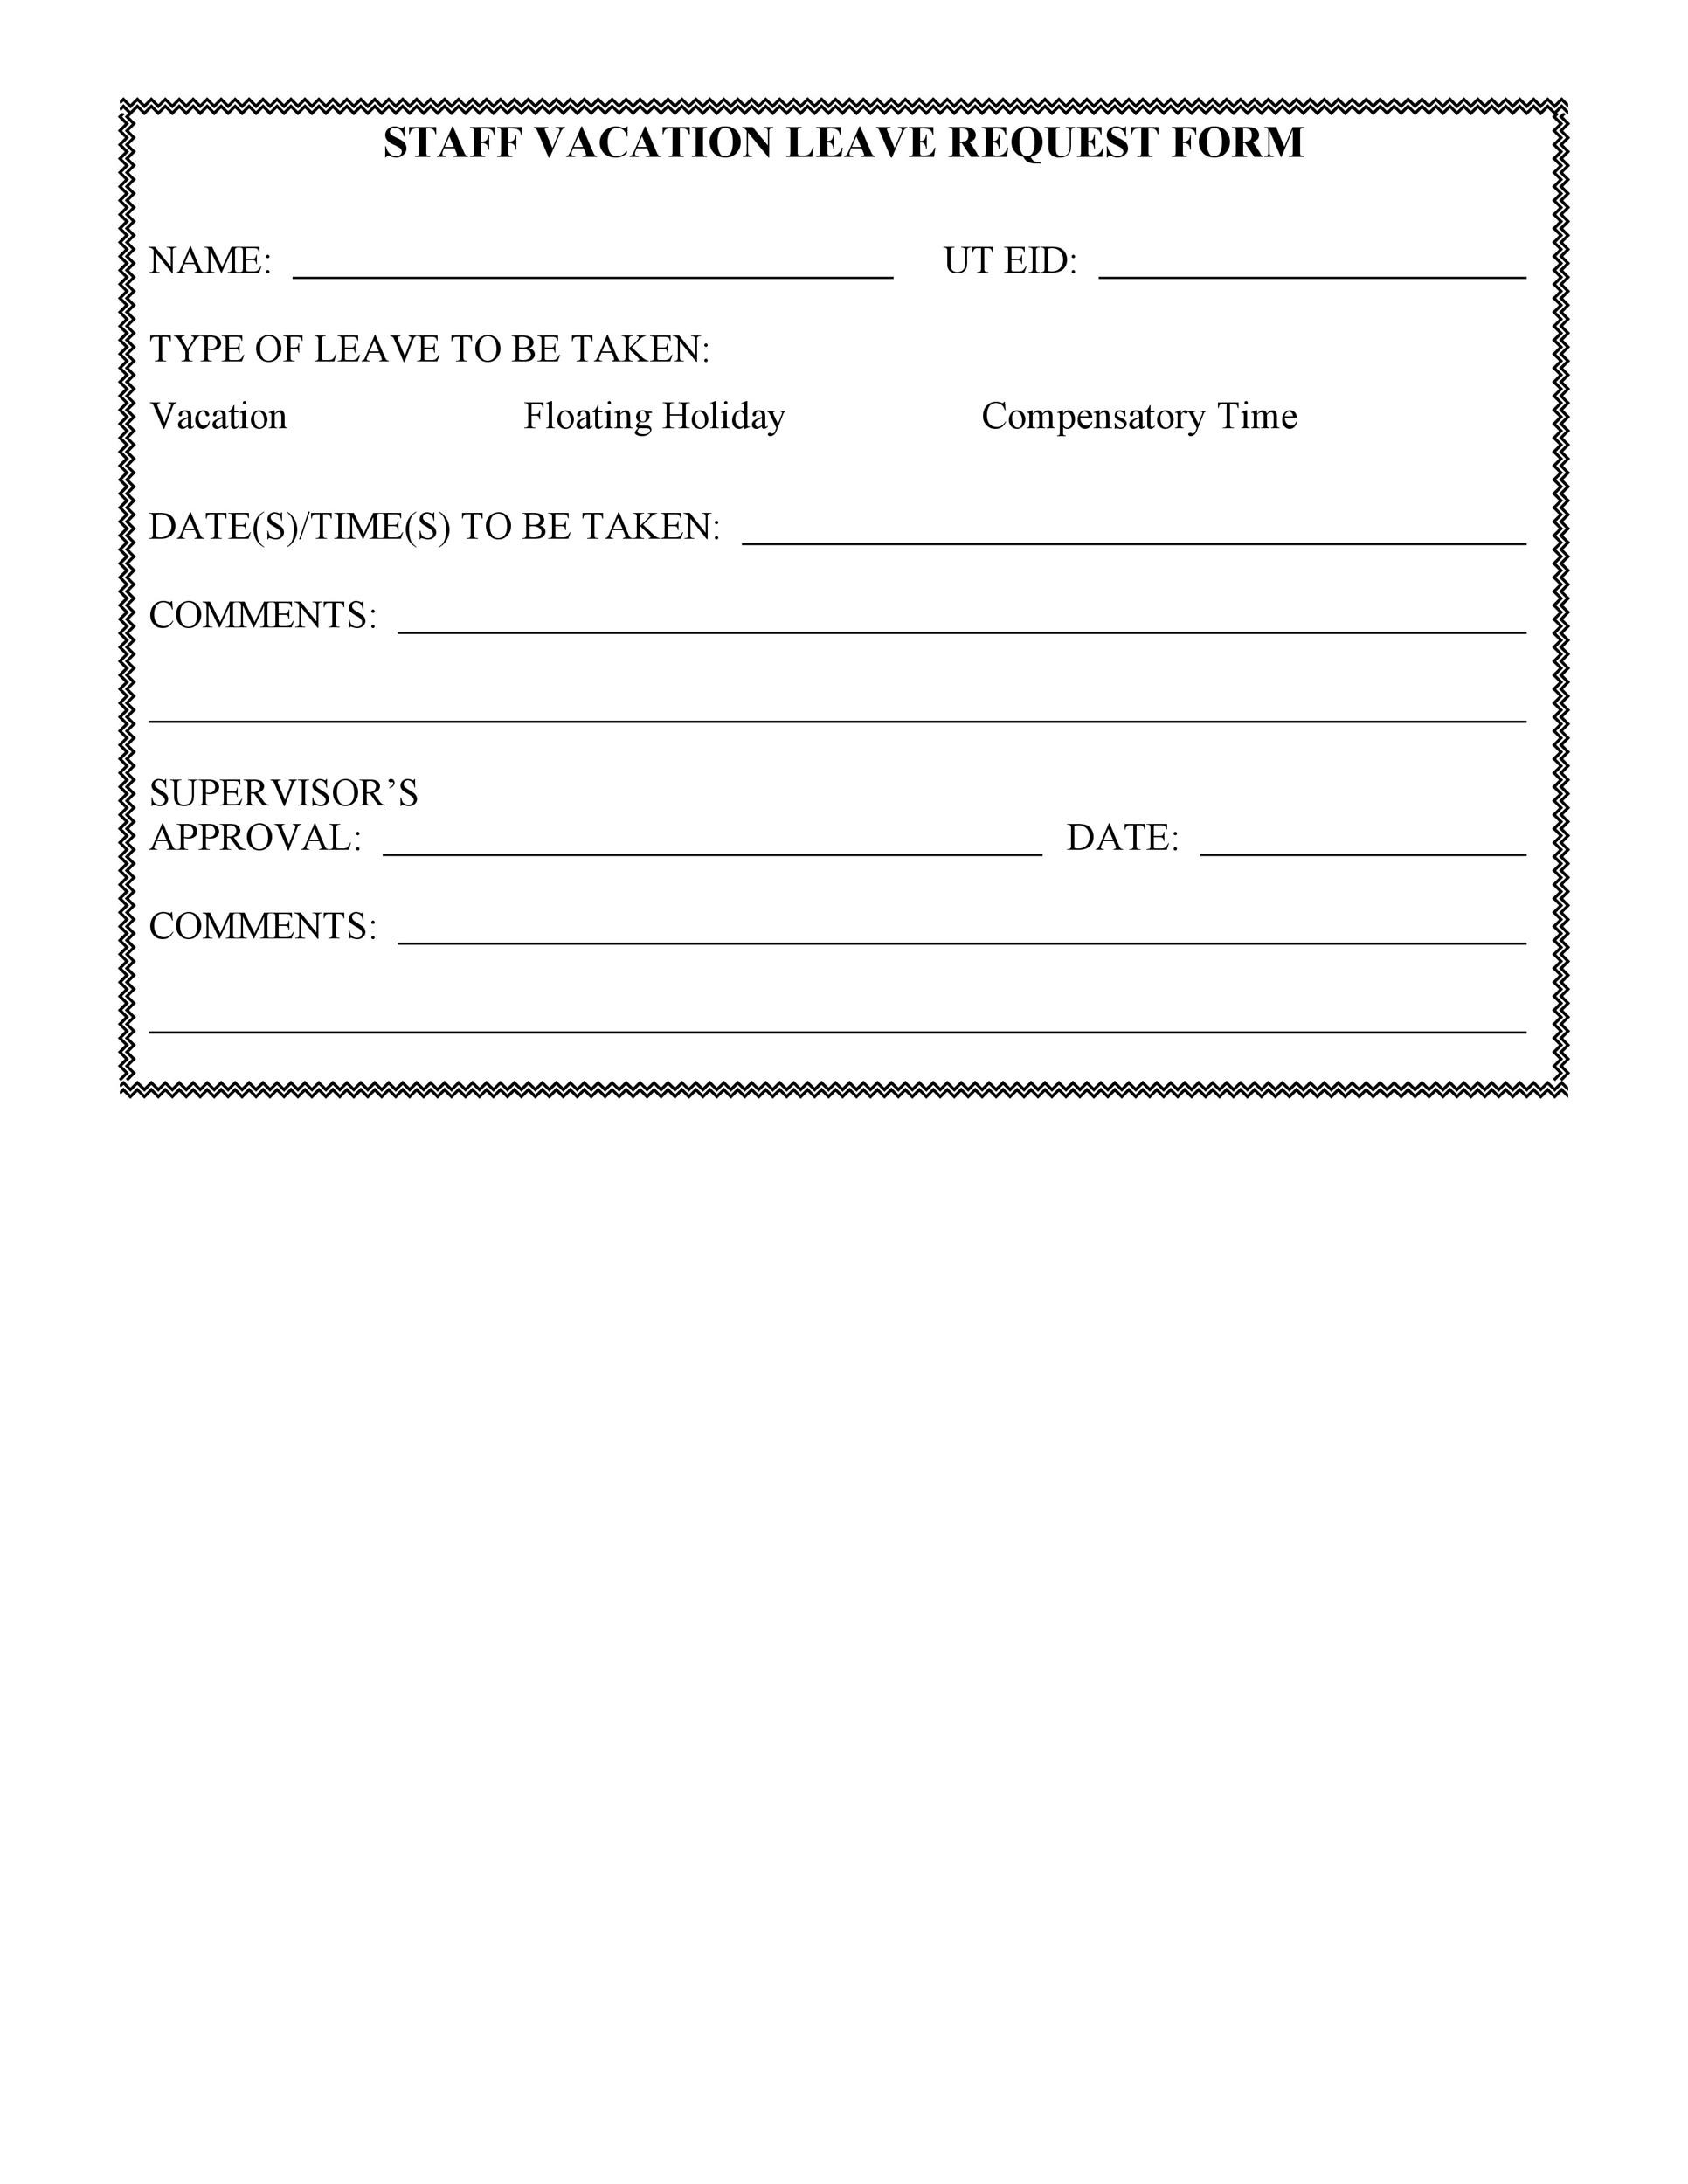 50 professional employee vacation request forms  word   u1405